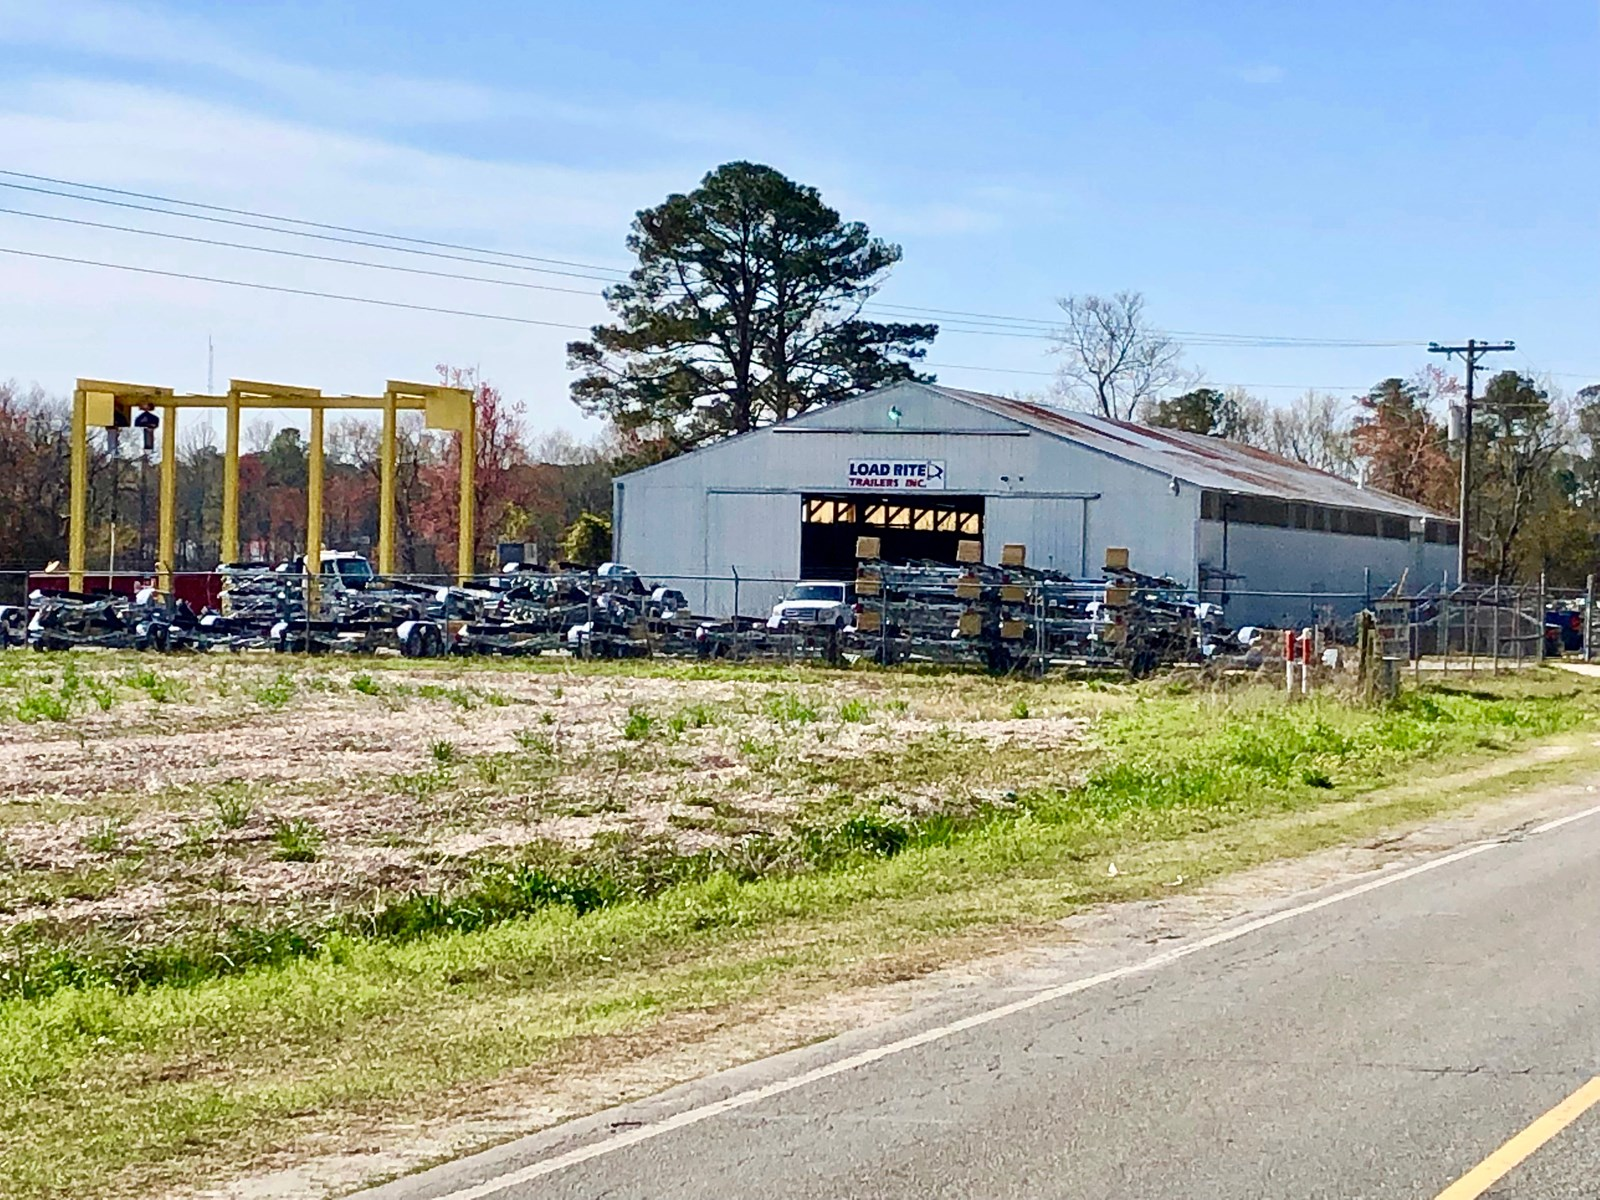 Commercial Property with Warehouse in Beaufort County, NC